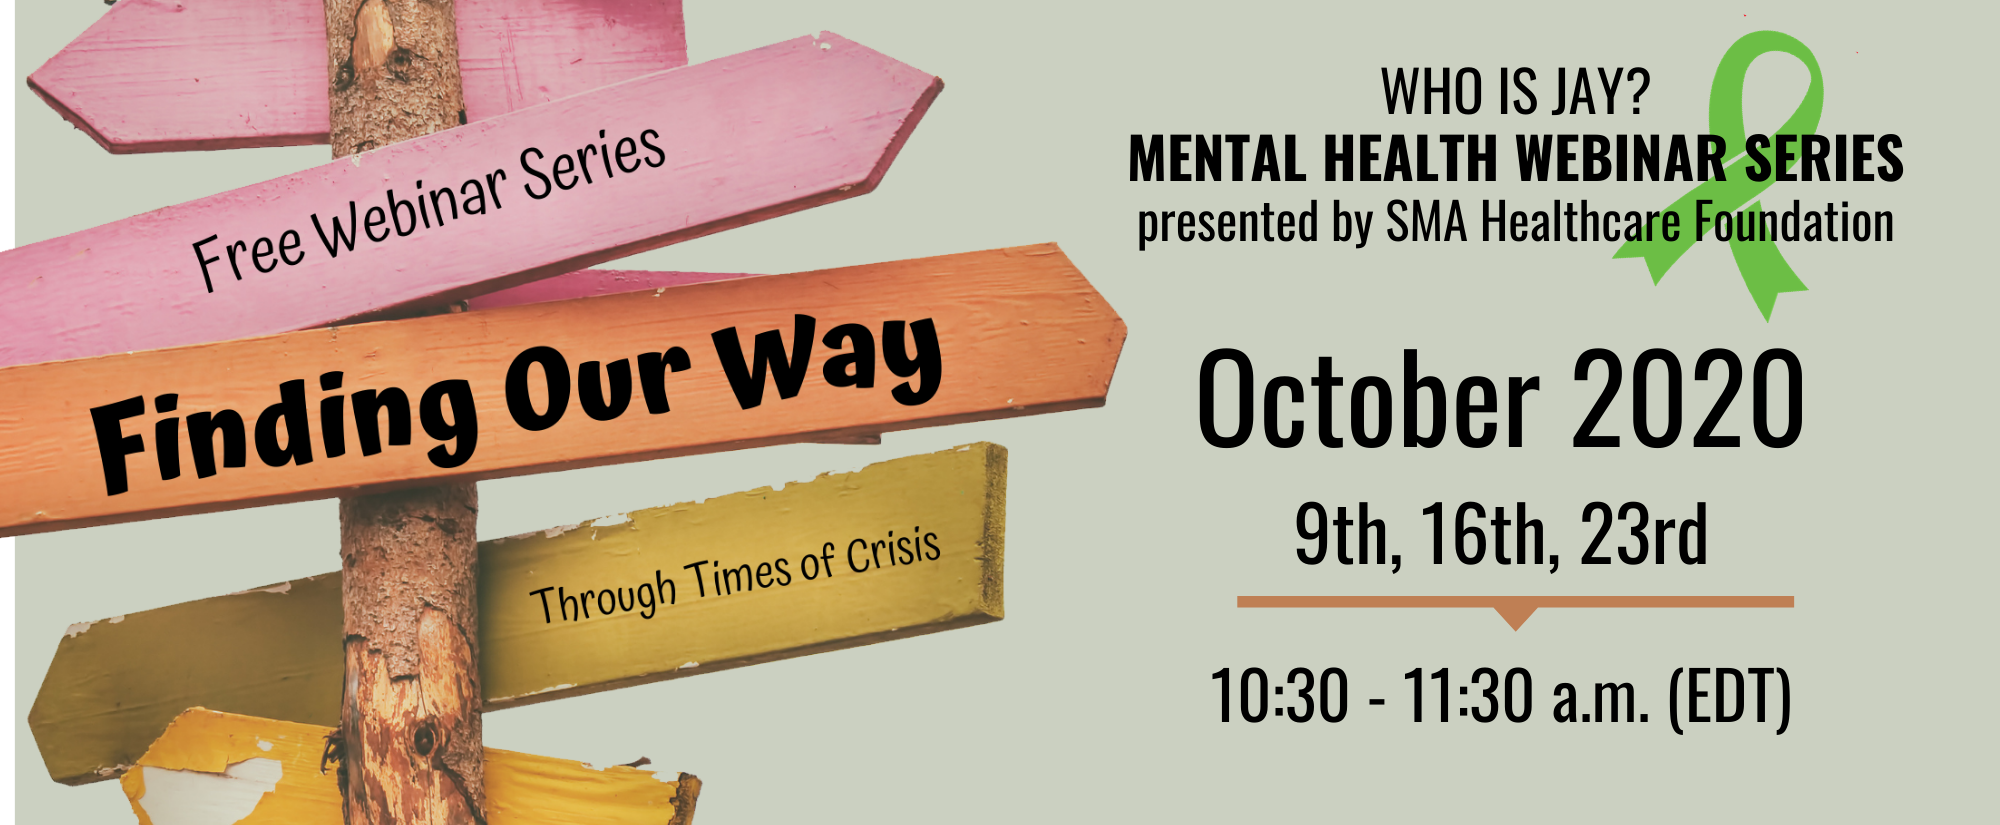 Who is Jay? Mental Health Webinar Series